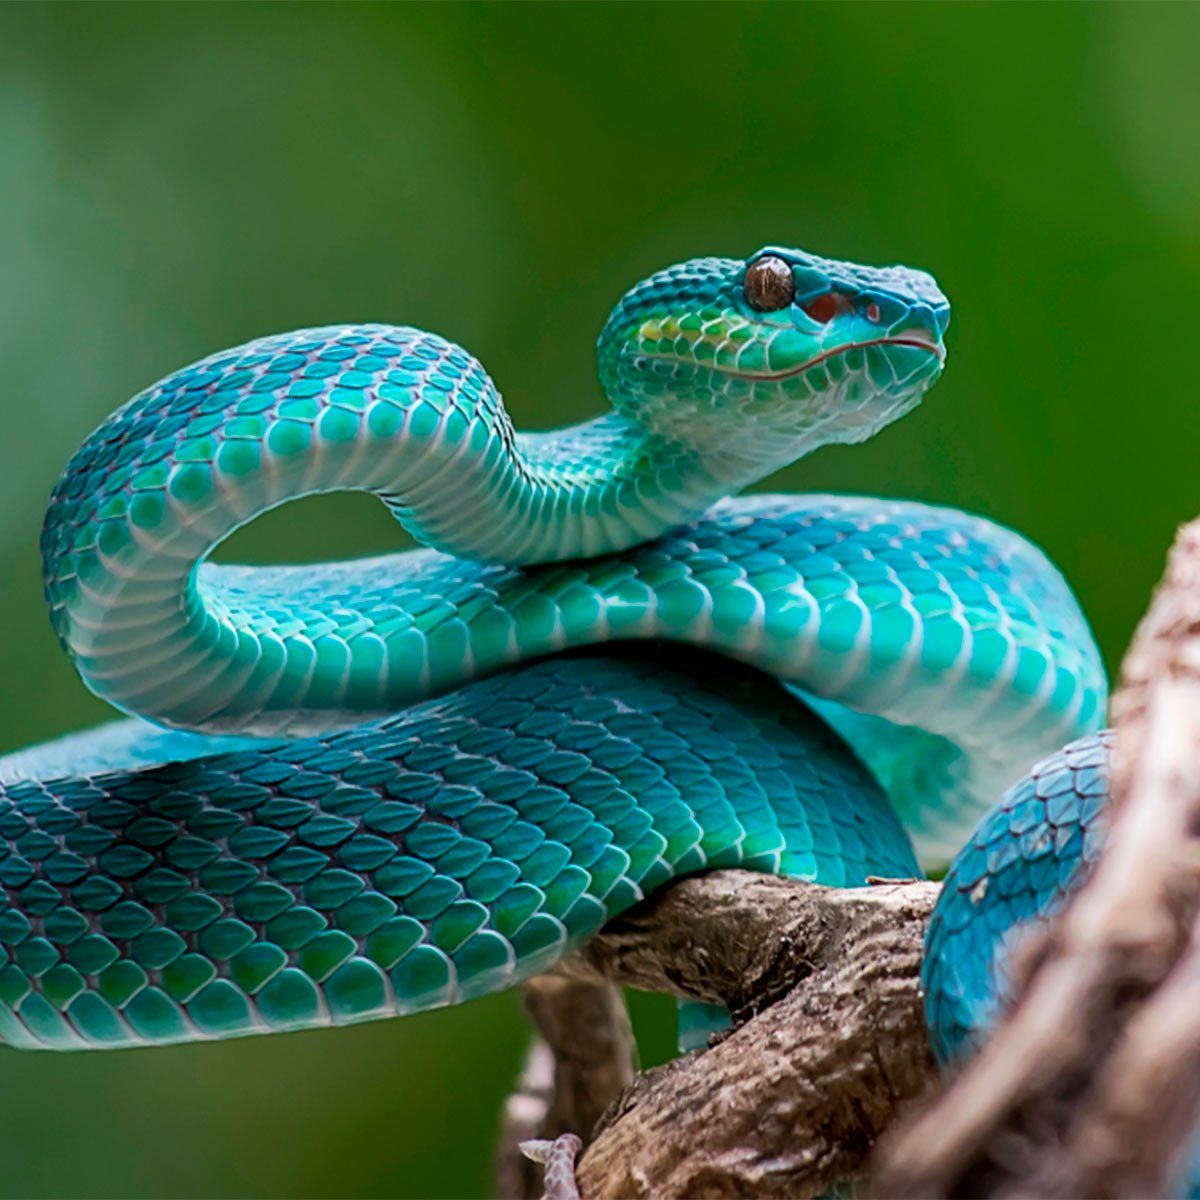 How to Avoid Snakes Slithering Up Your Toilet (With images